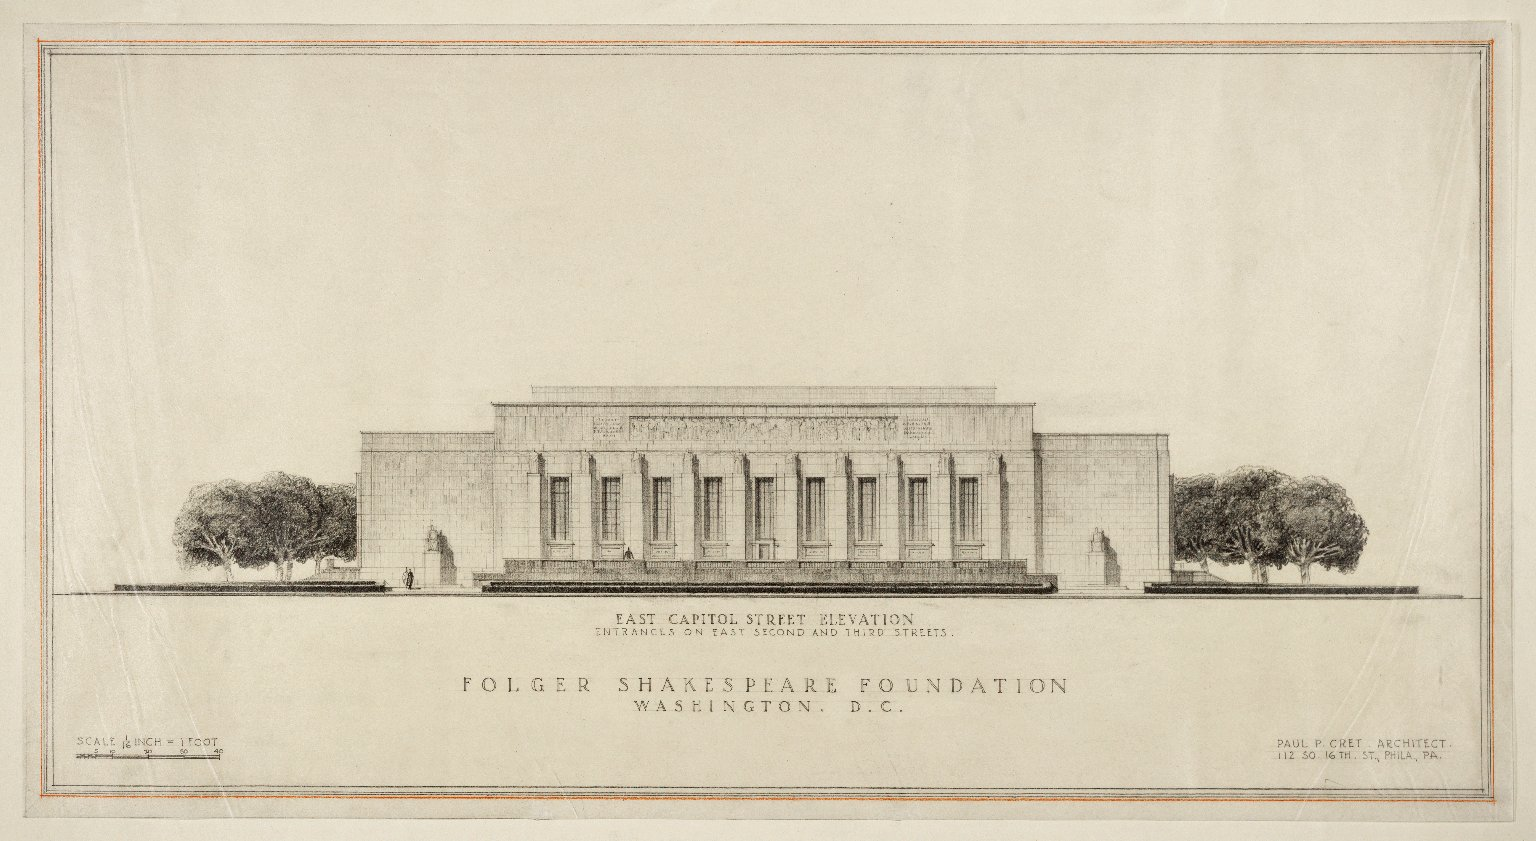 Original designs for the east facade of the Folger Shakespeare Library, early 1930s. Image by Paul Philippe Cret - http://luna.folger.edu/luna/servlet/s/xv06qy, CC BY-SA 4.0, https://commons.wikimedia.org/w/index.php?curid=41931127